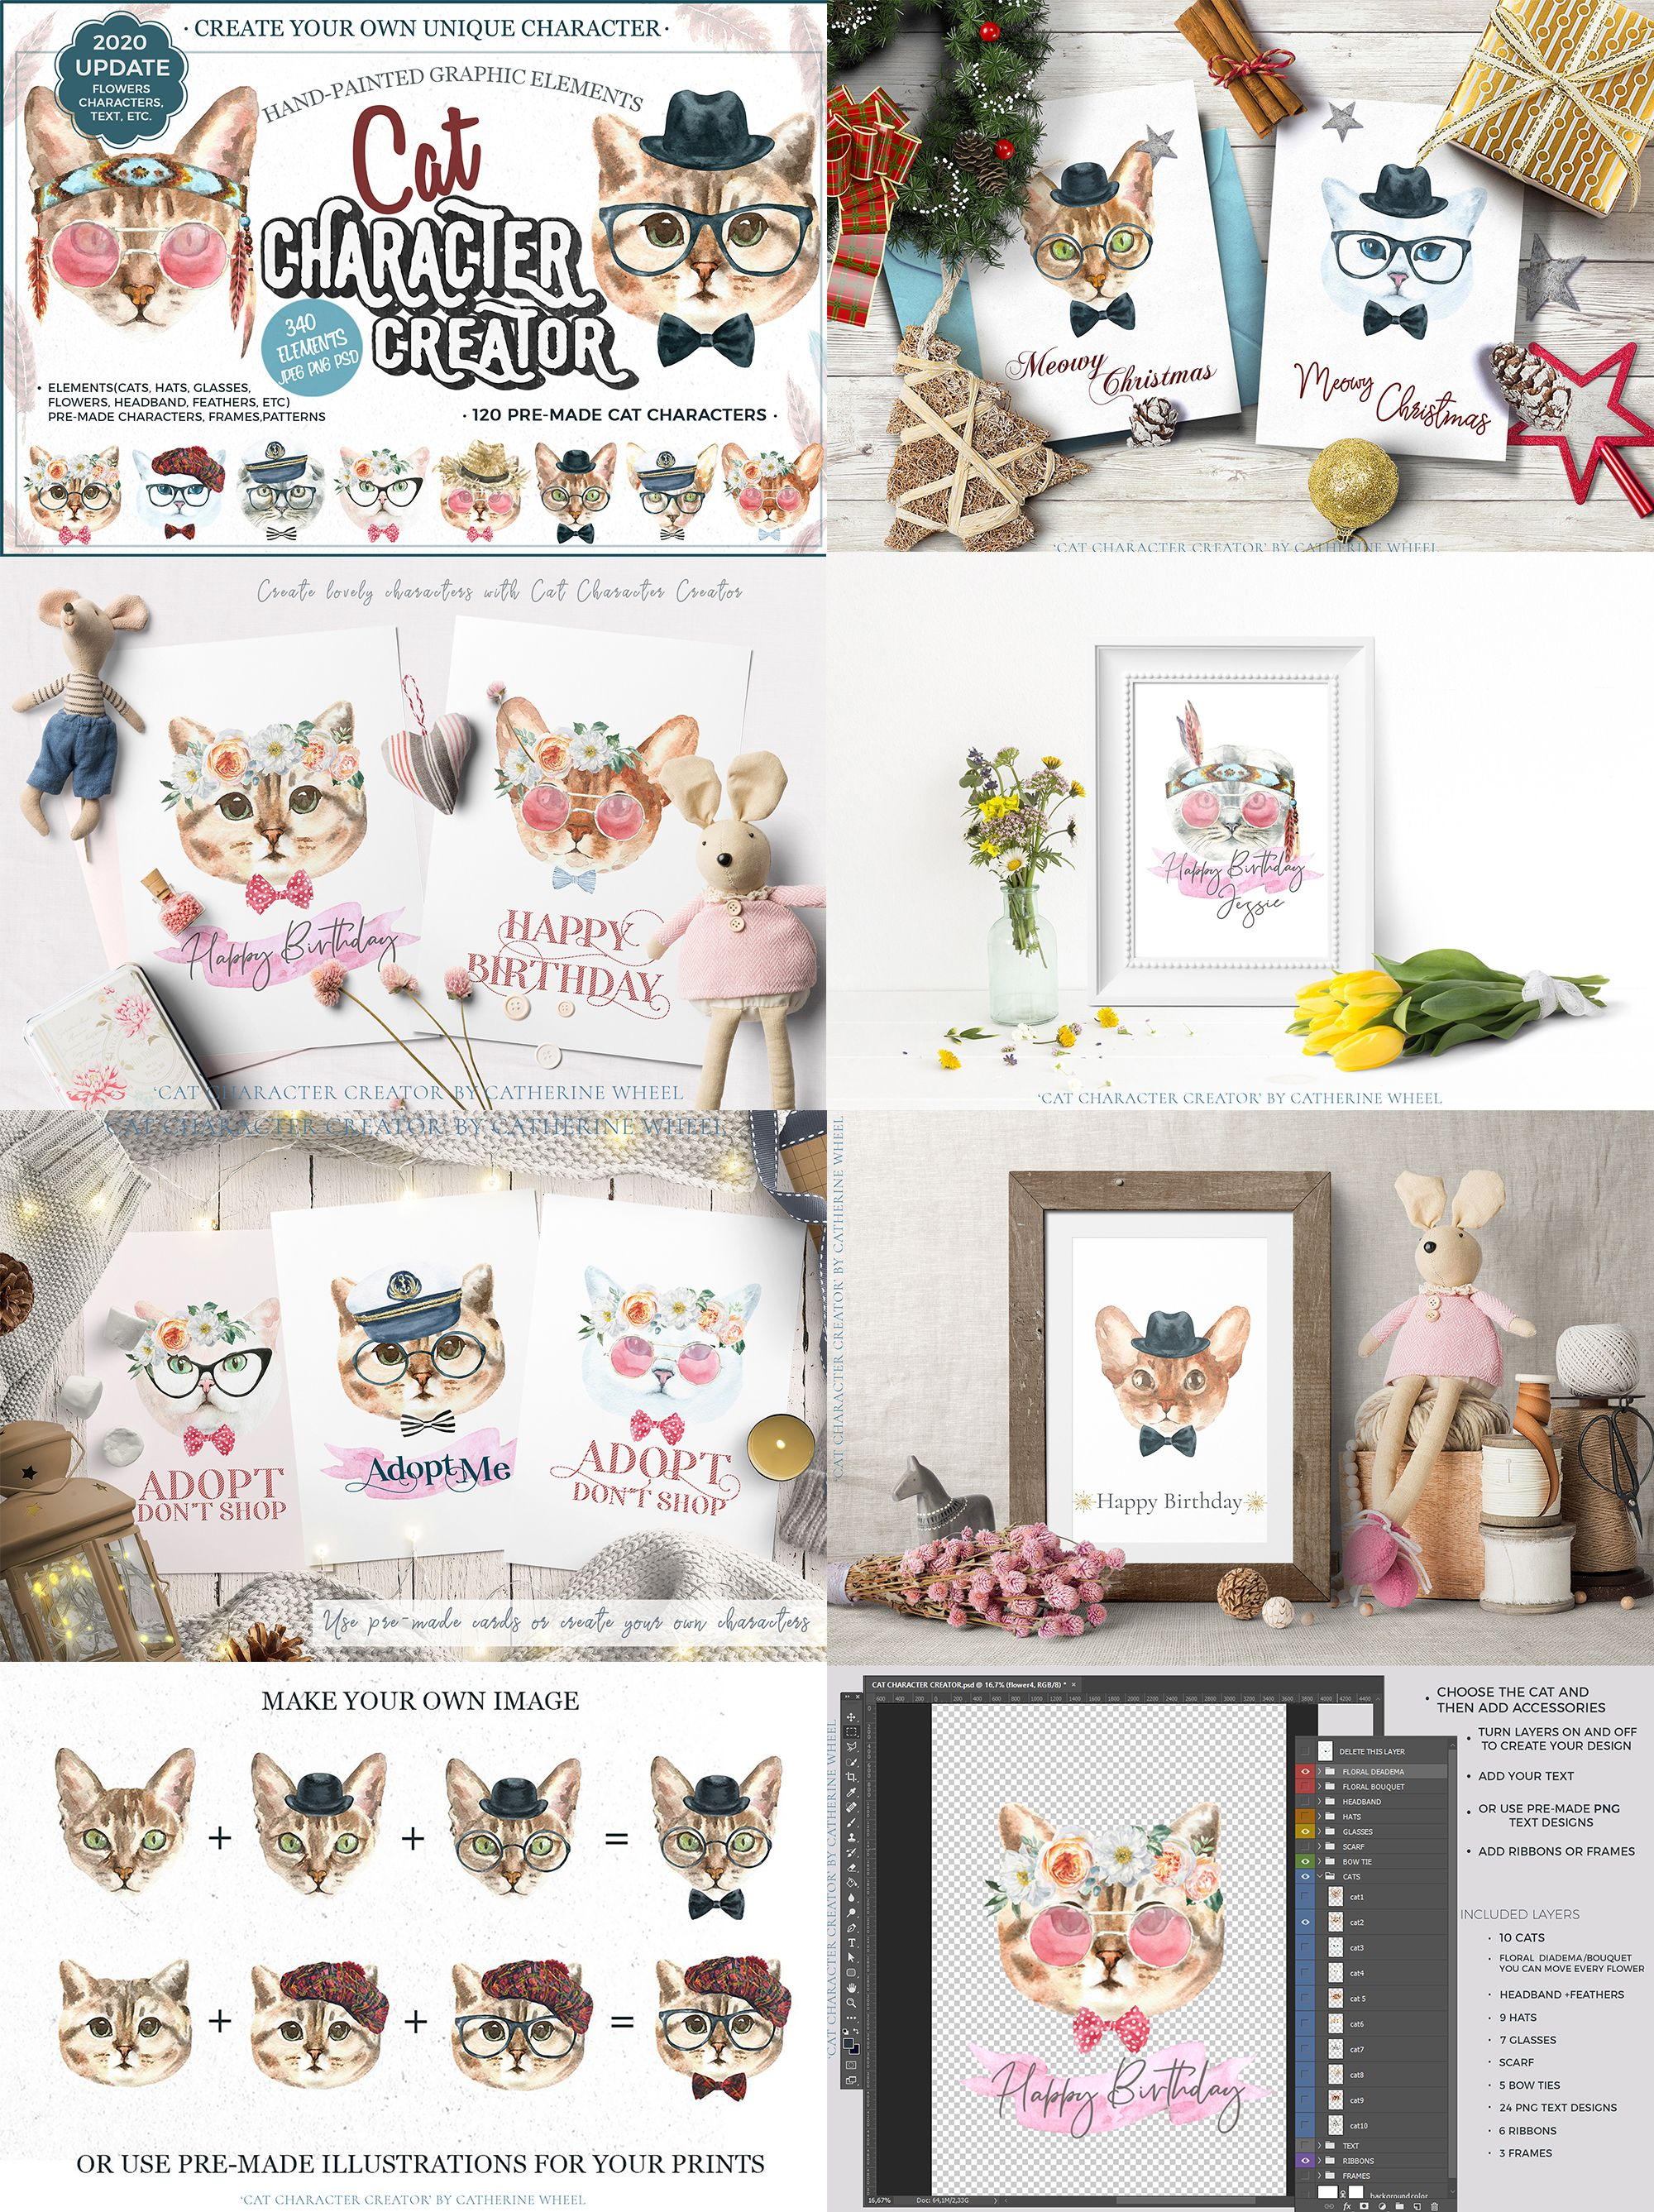 Watercolor Animals Bundle 13in1,Watercolor Christmas Woodland animals clipart,Animal creator #1weihnachtstaglustig